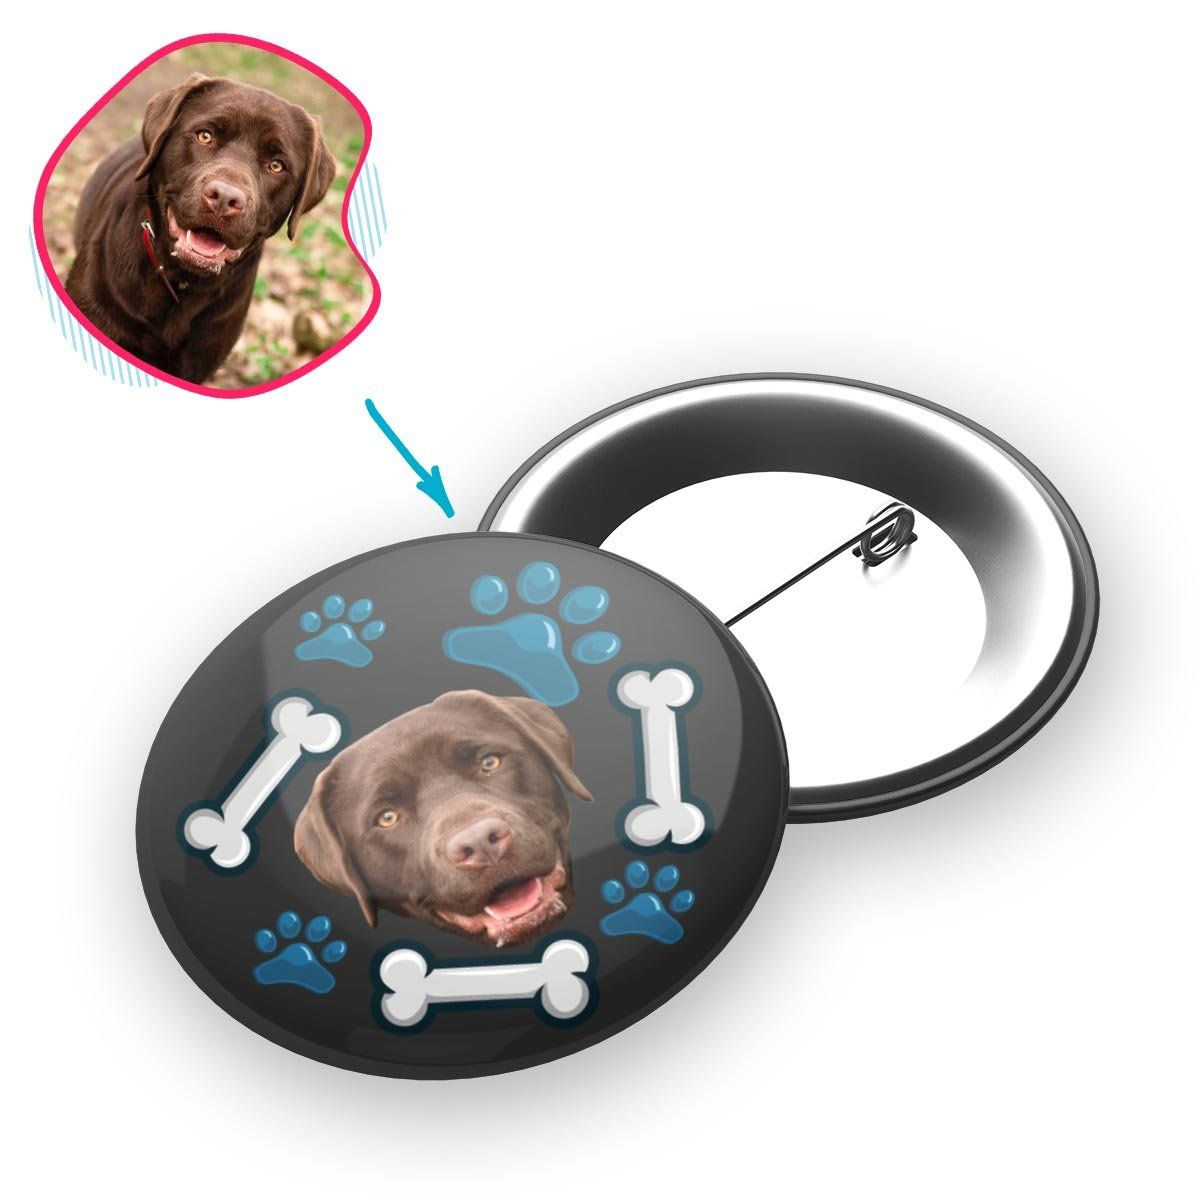 dark Dog pin personalized with photo of face printed on it